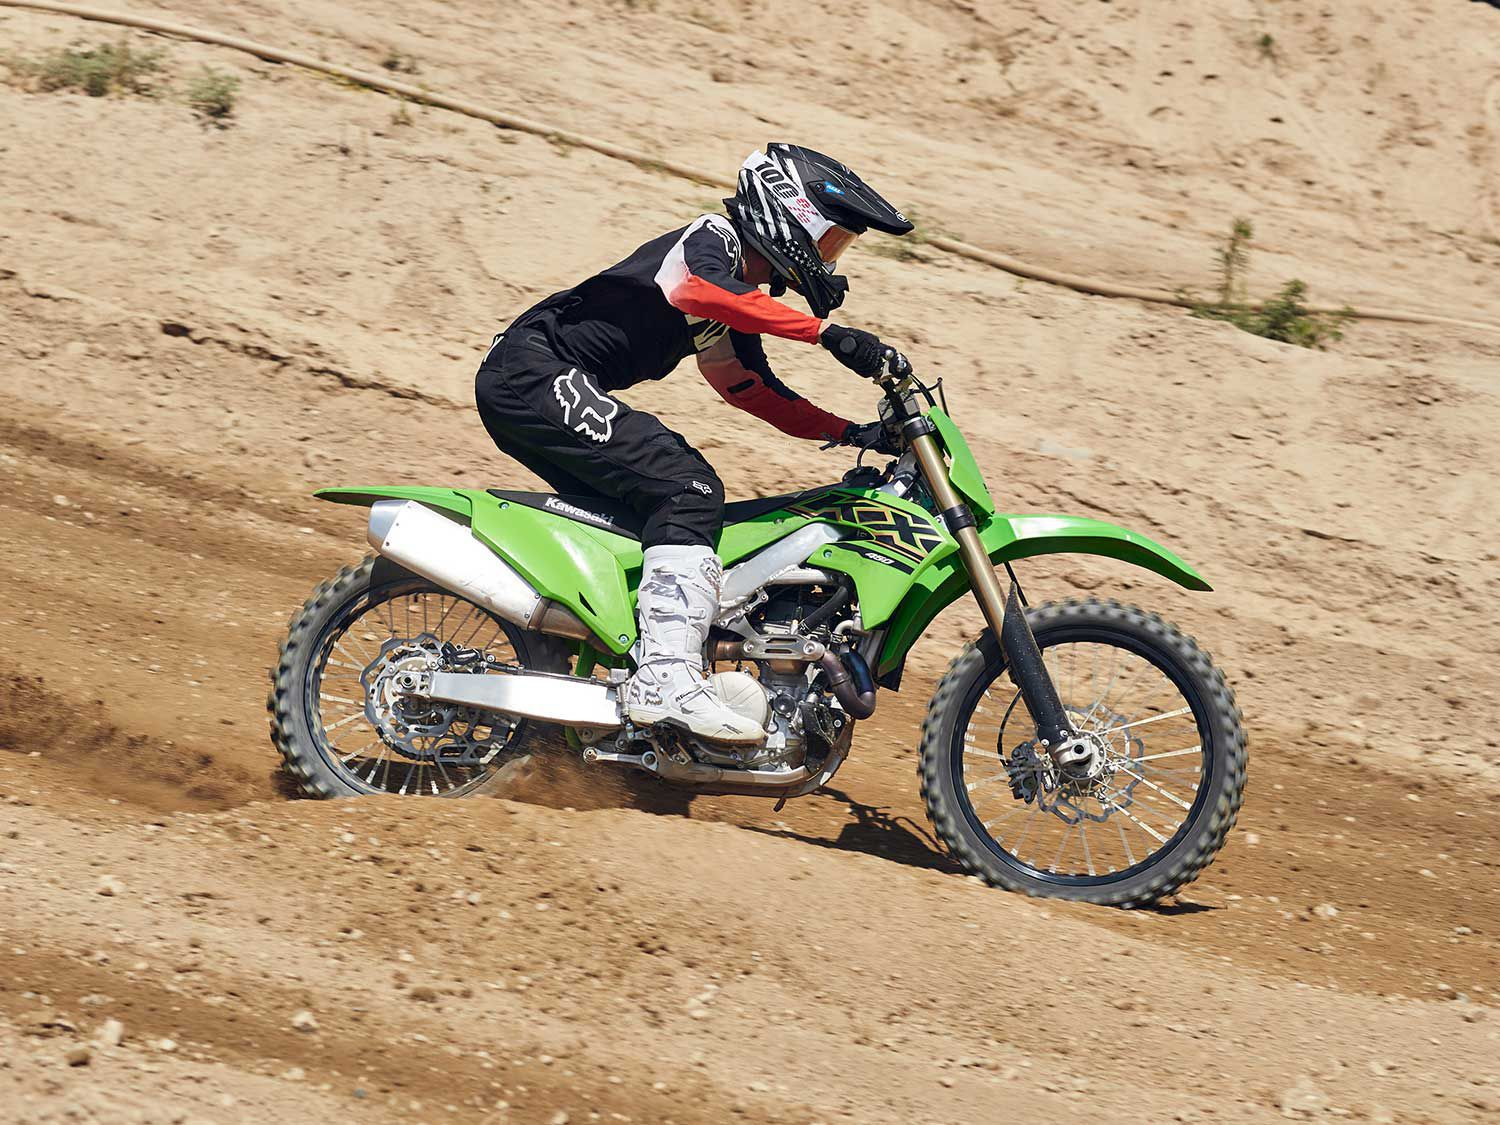 One of our few complaints about the current generation KX450 is its 250mm rear brake rotor. It's a bit touchy and makes it too easy to lock up the rear brake at times.